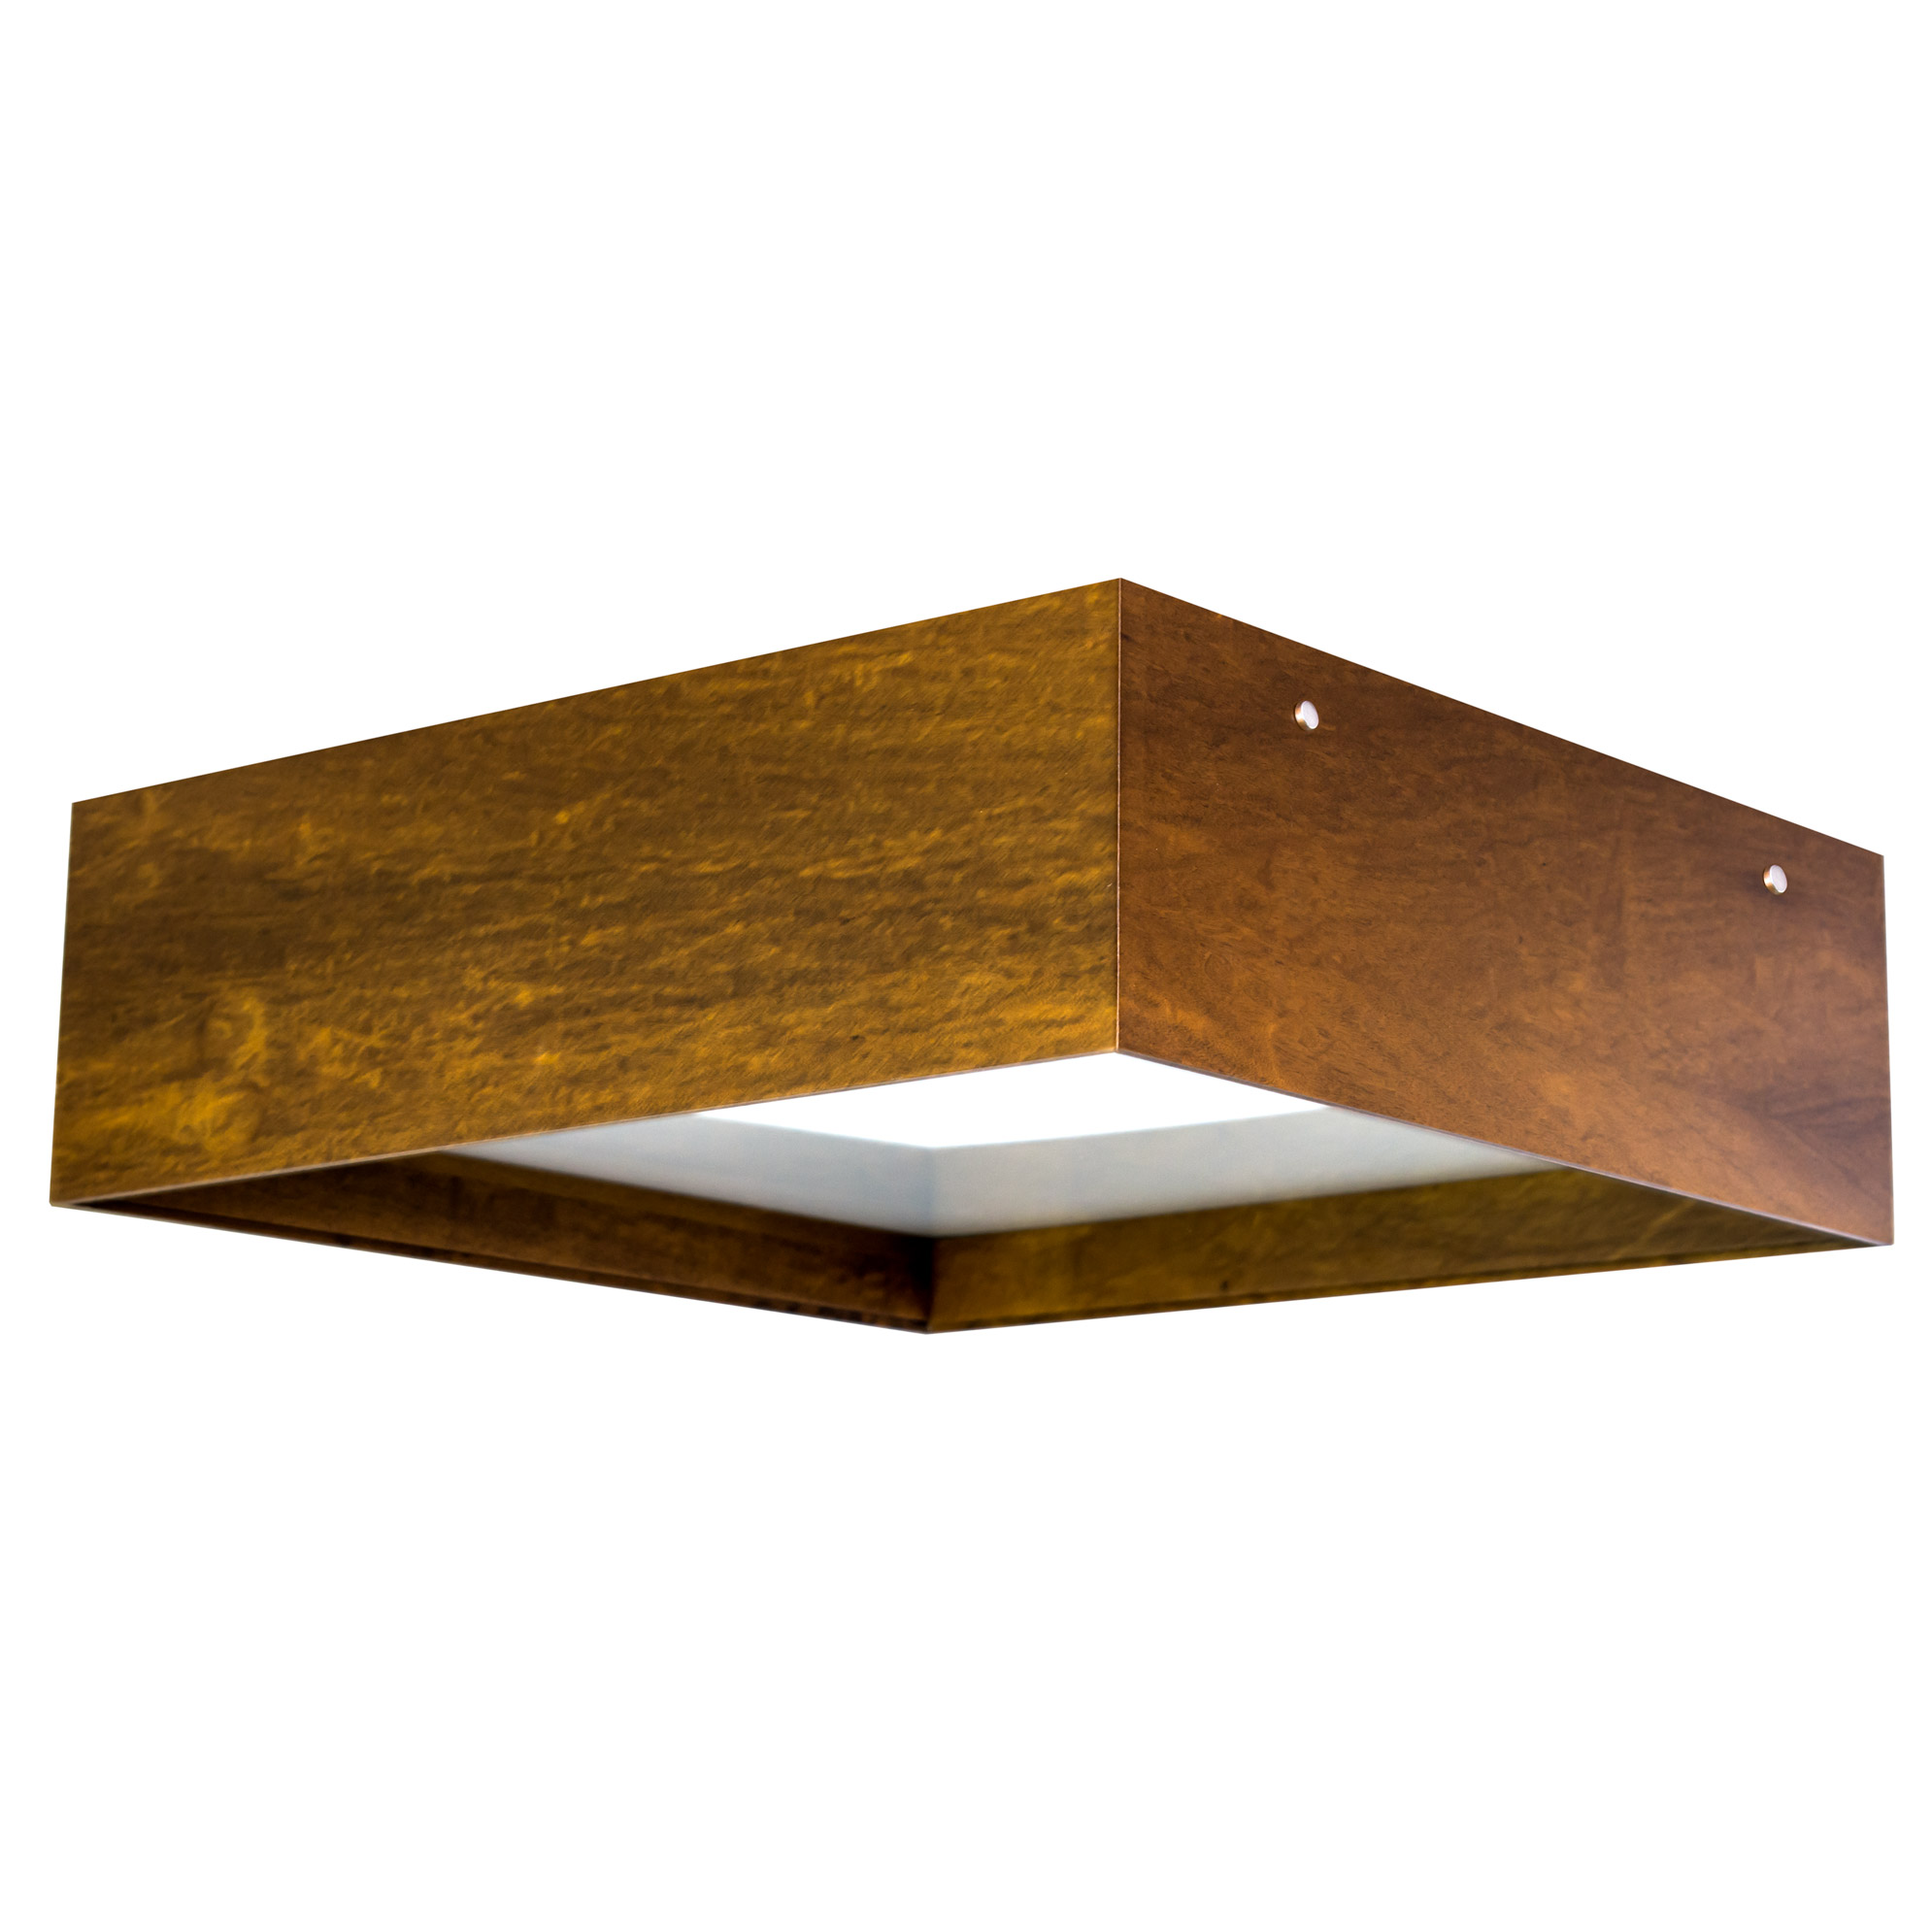 Line Frame Square Ceiling Light Fixture By Lightology Collection Lc Ac 591 18